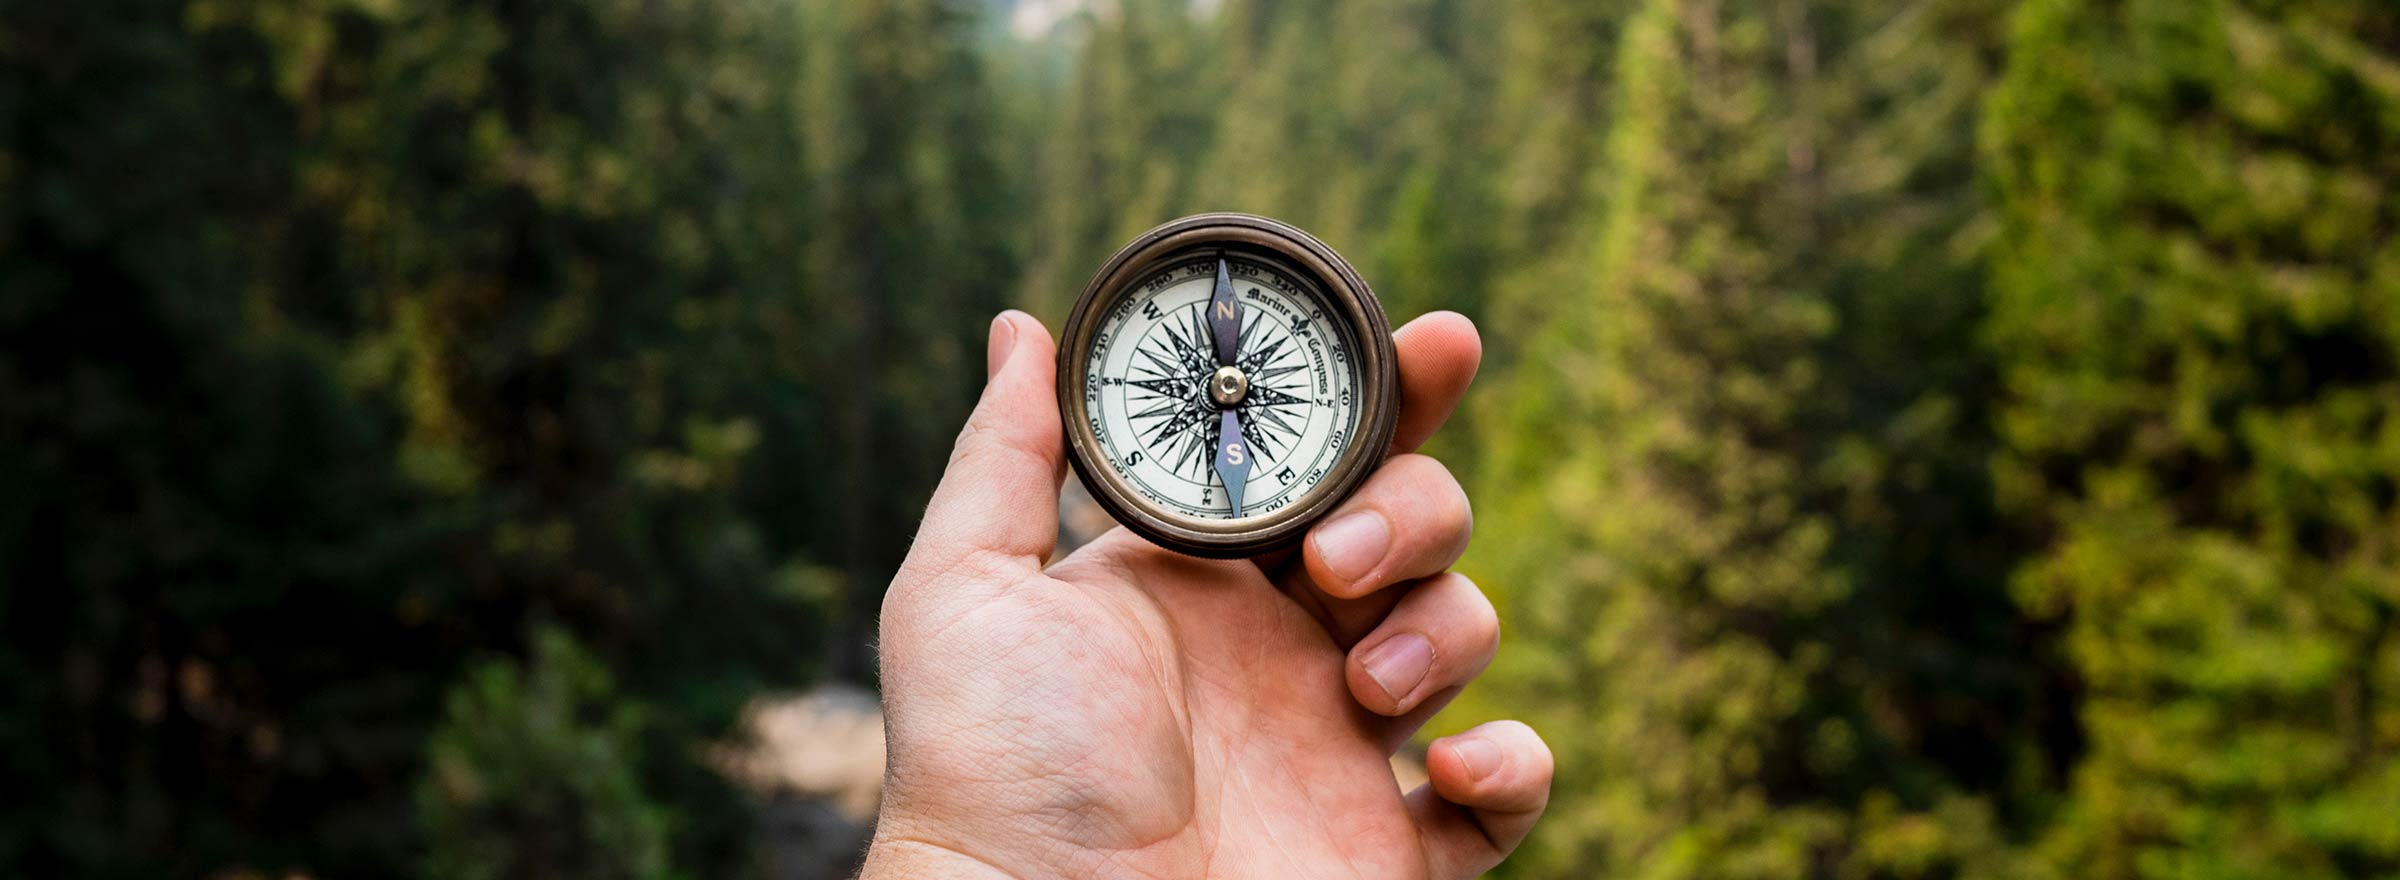 person in a forest holding a compass, representing what nonprofits can gain from TechSoup services